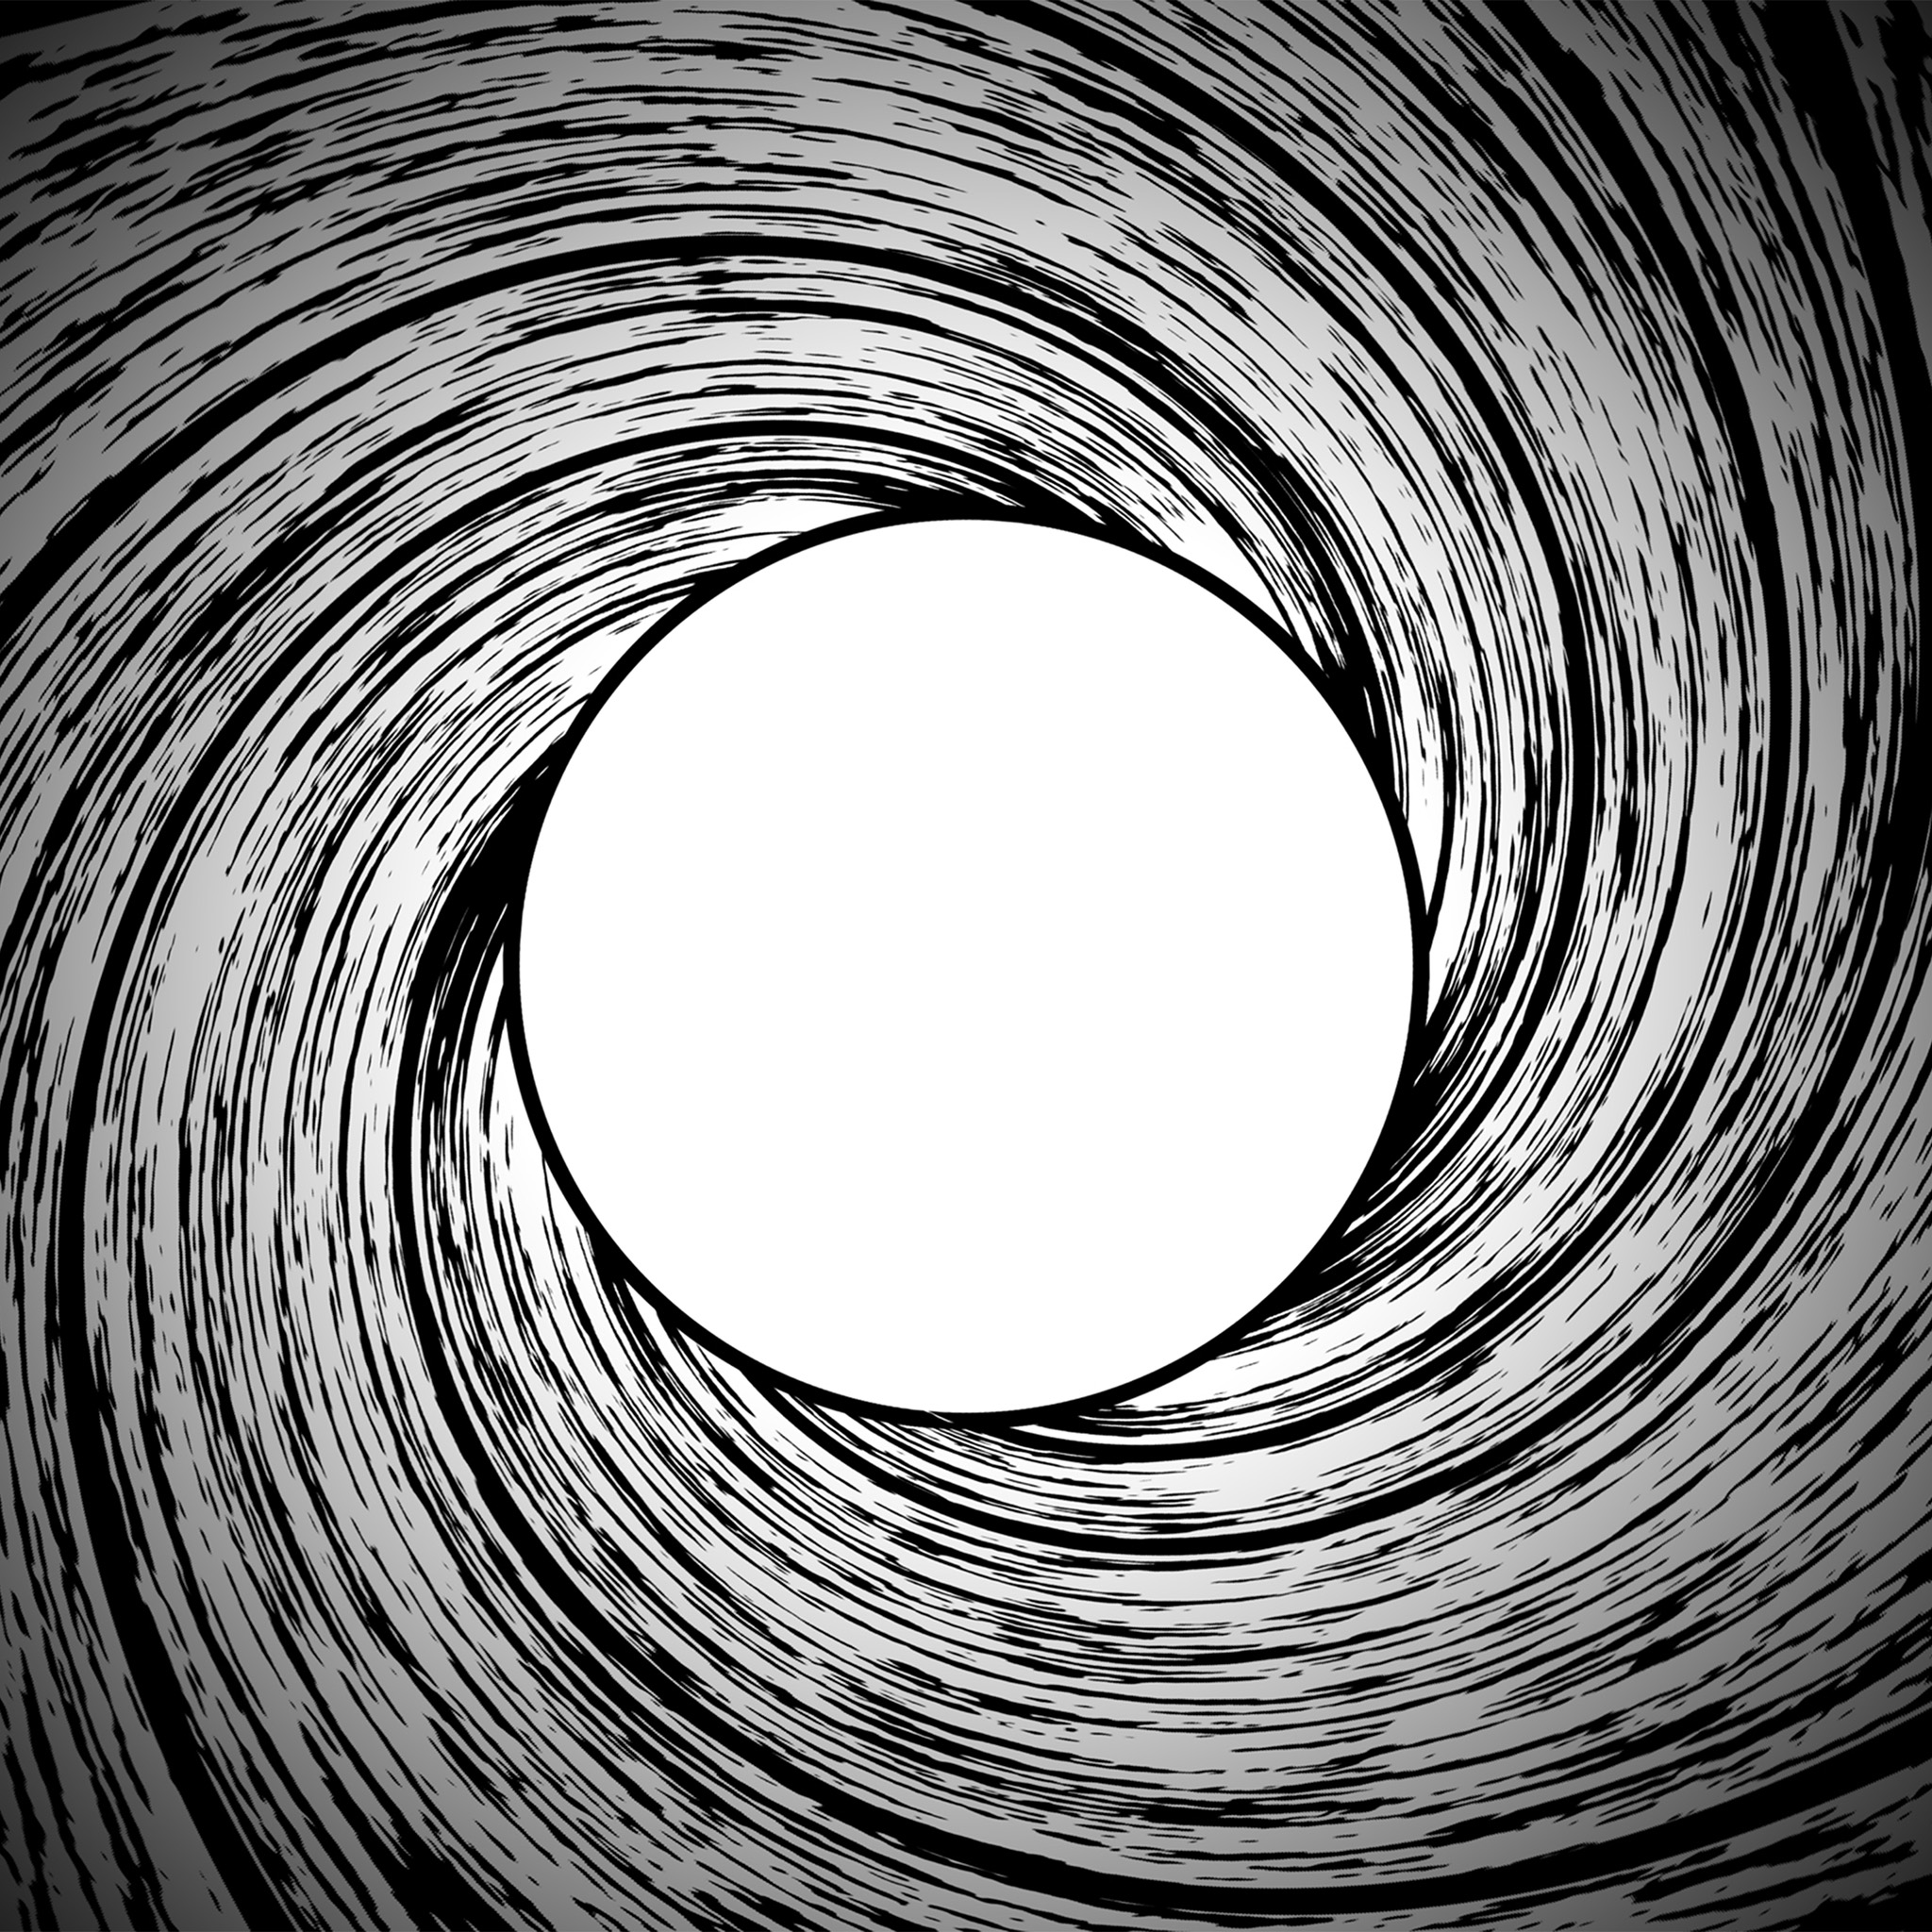 vm95-james-bond-circle-bw-pattern-wallpaper